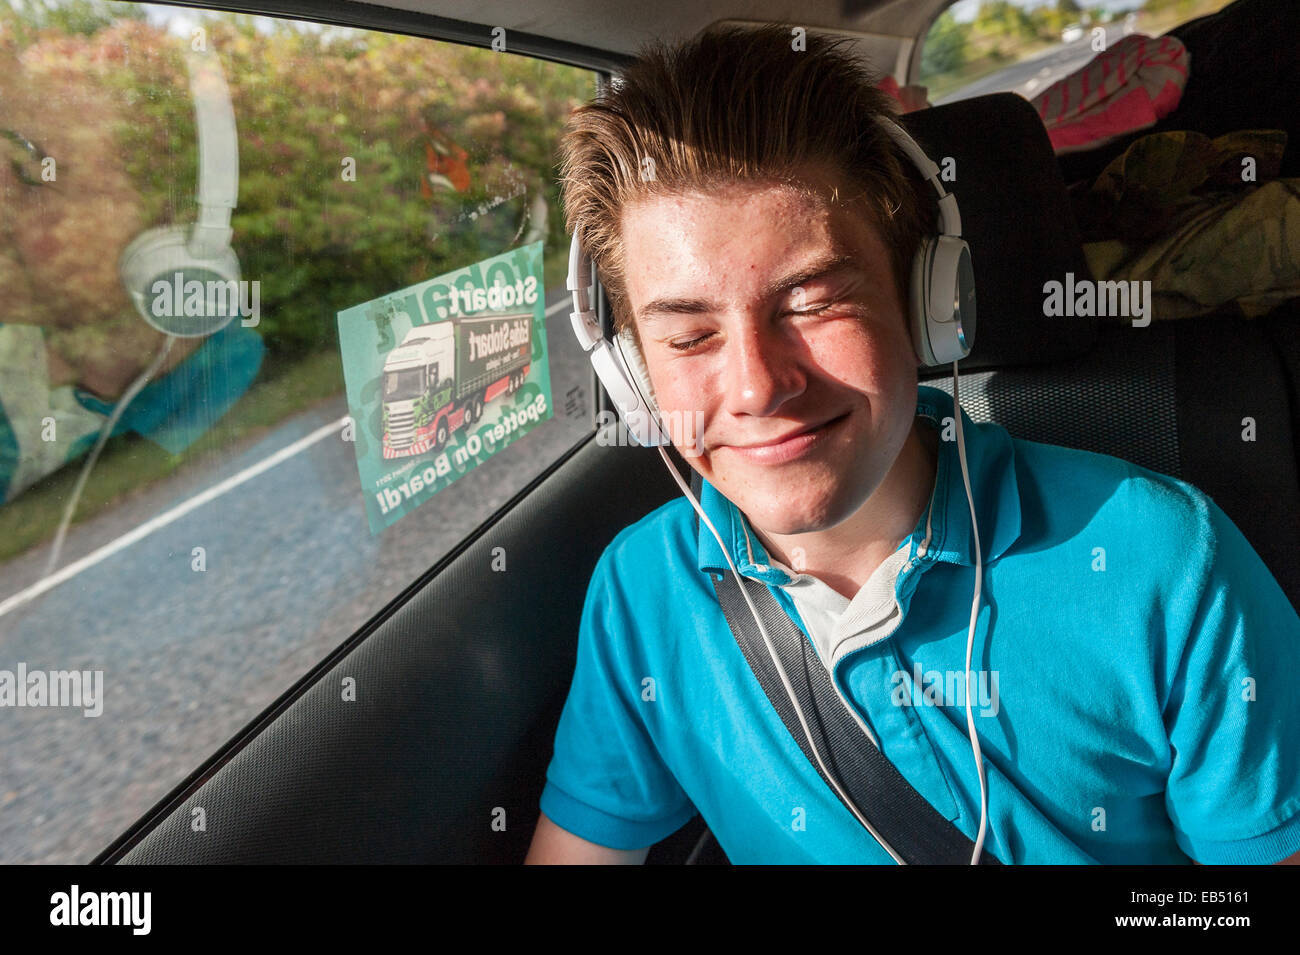 A 14 year old boy listening to music in the car Stock Photo